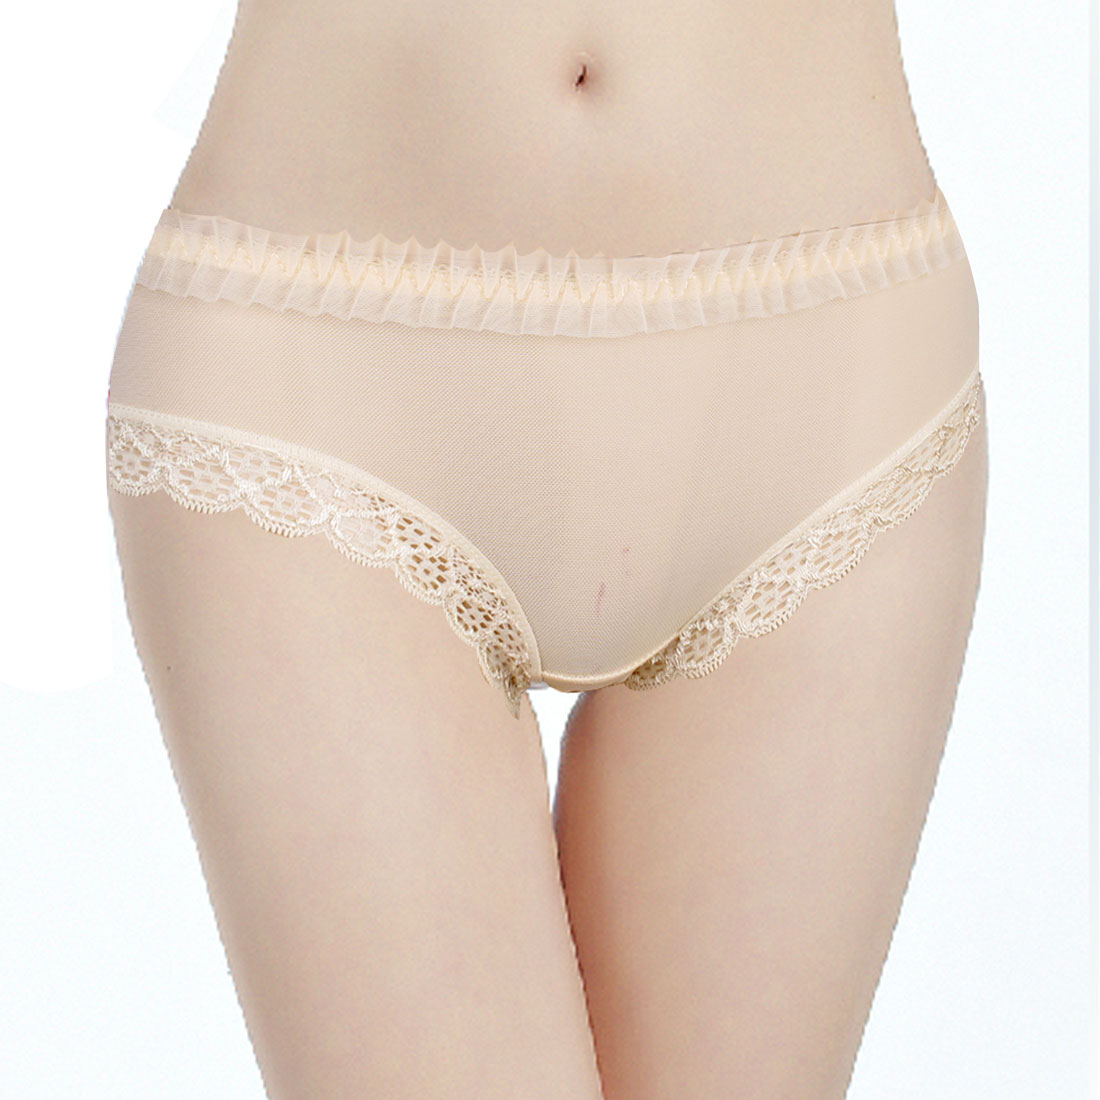 Ladies Beige Bowknot Decor Back Waist Sheer Briefs Underpants Panties XS